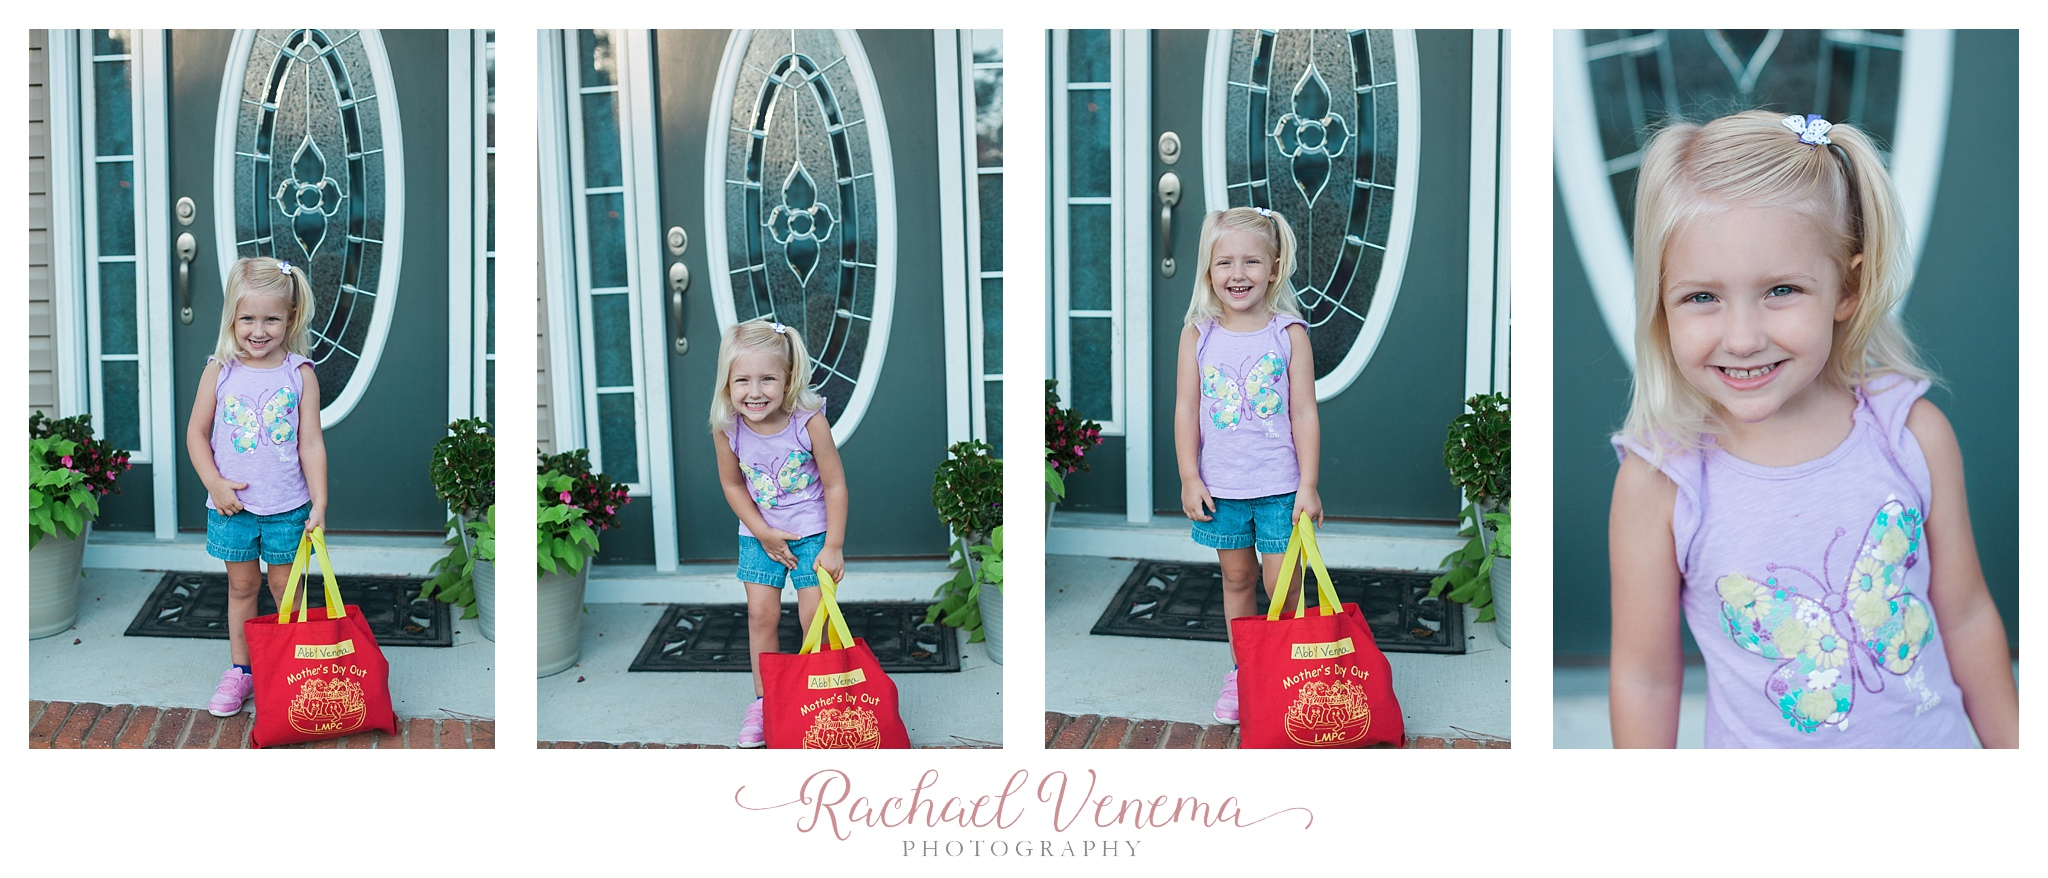 9-Tips-First-Day-of-School-Photos-8.jpg